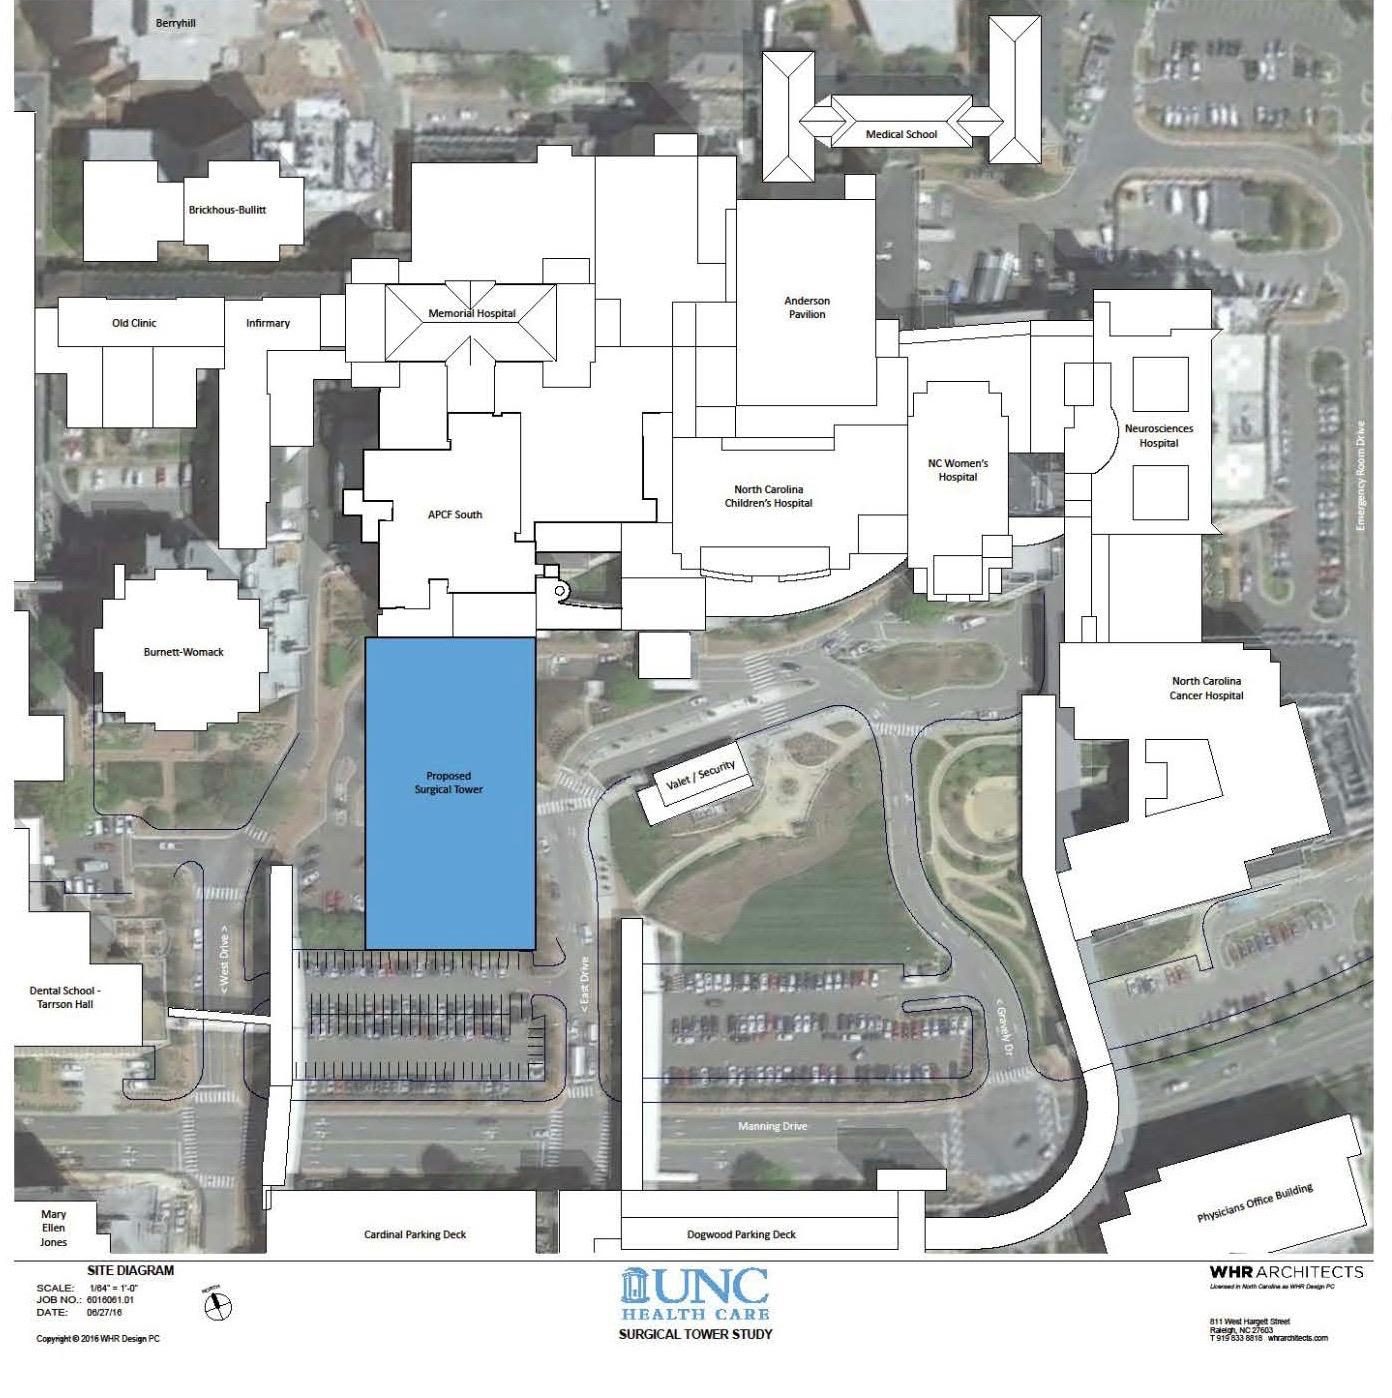 UNC Hospitals To Add New Surgical Tower On Chapel Hill's ... on chapel hill nc county map, cal state hayward campus map, univ of md campus map,